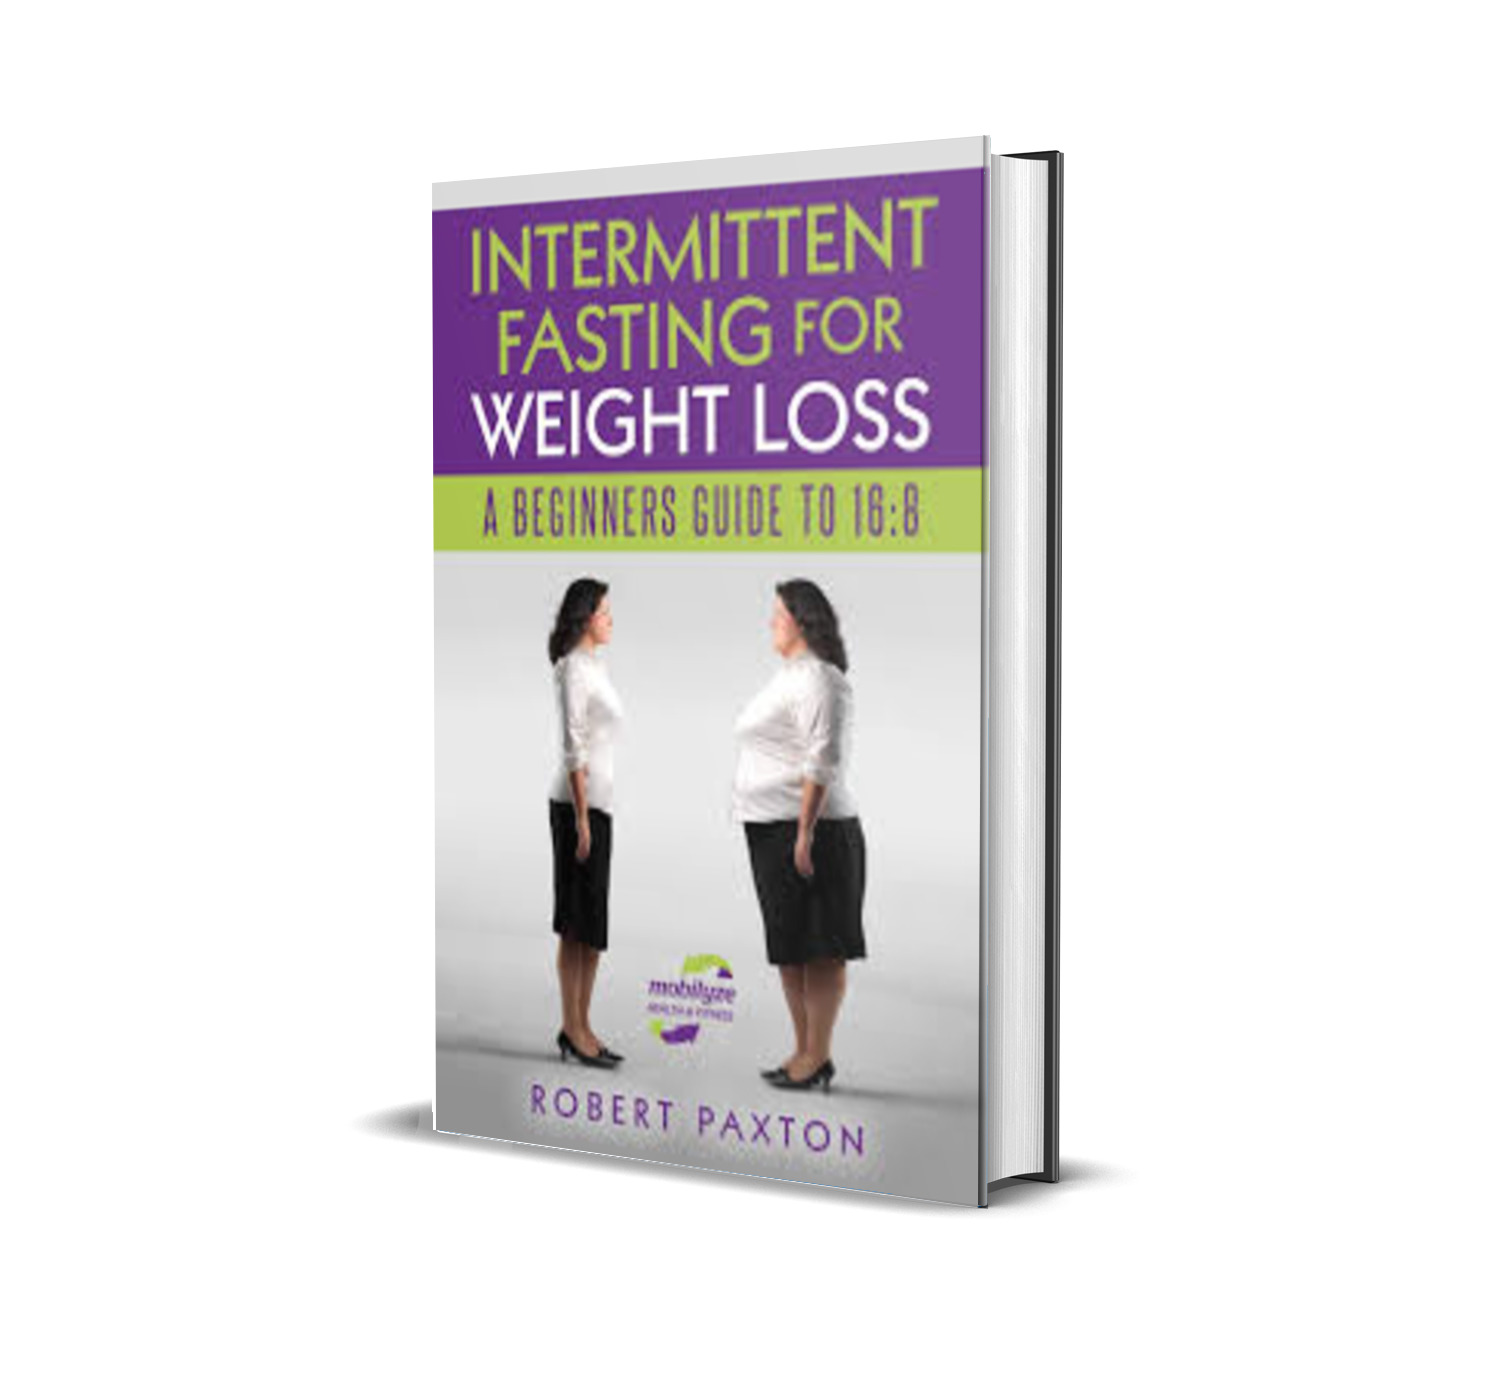 Intermittent Fasting For Weight Loss - Robert Paxton